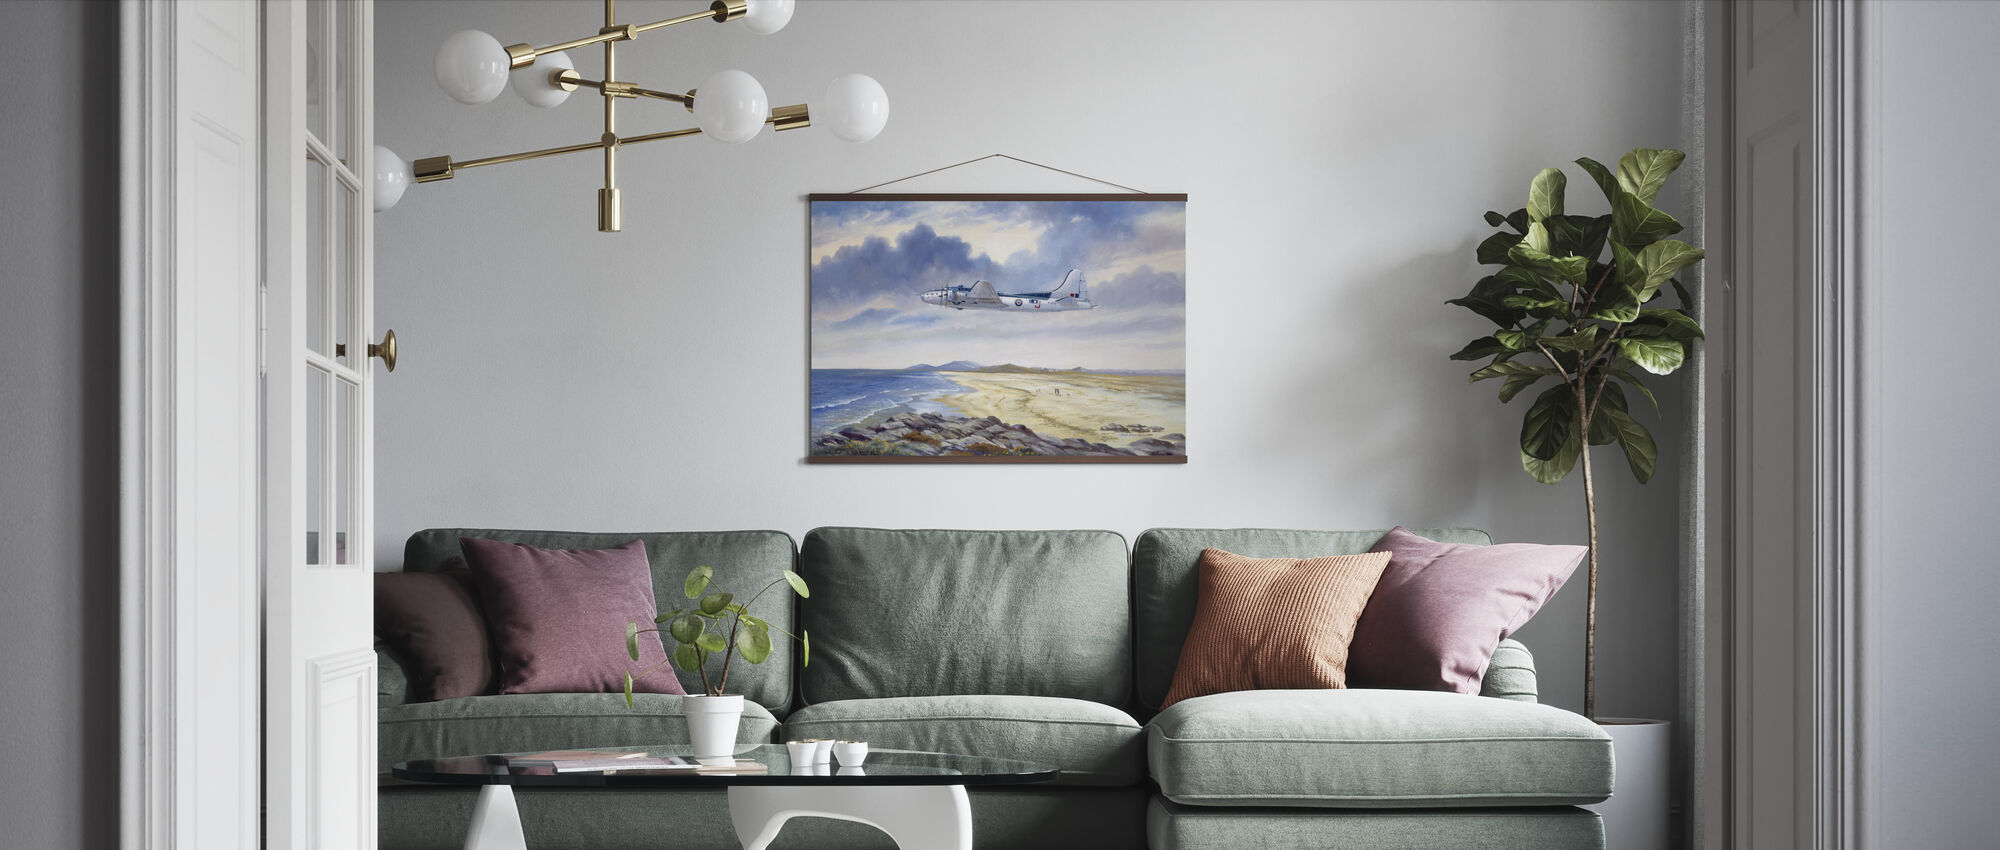 B17 Over Benbecula - Poster - Living Room